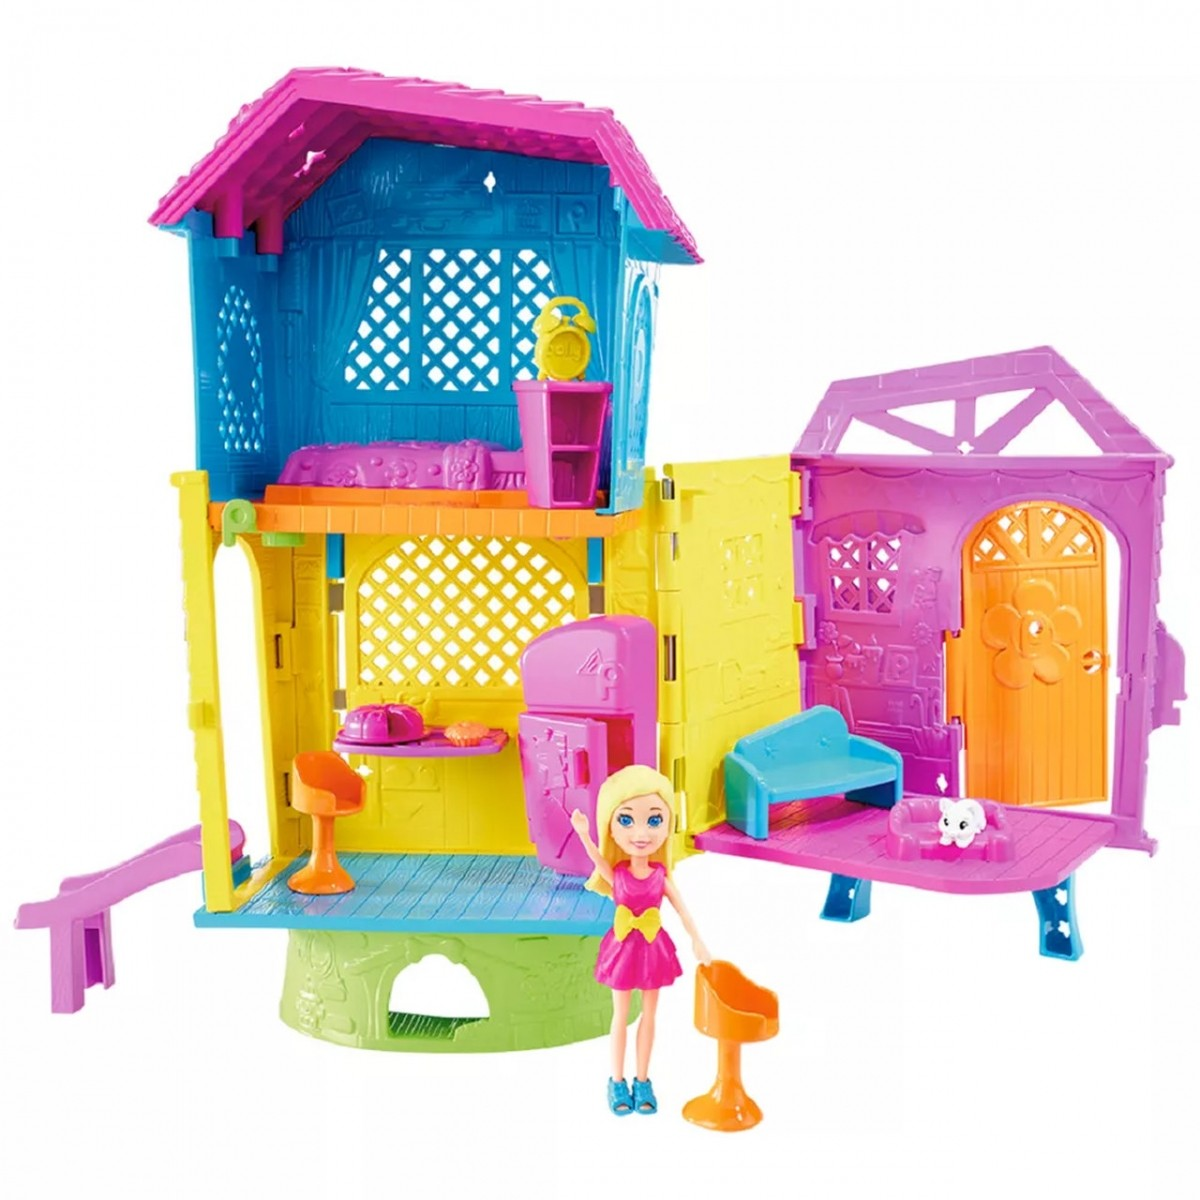 Boneca Polly: Super Clubhouse Polly Pocket